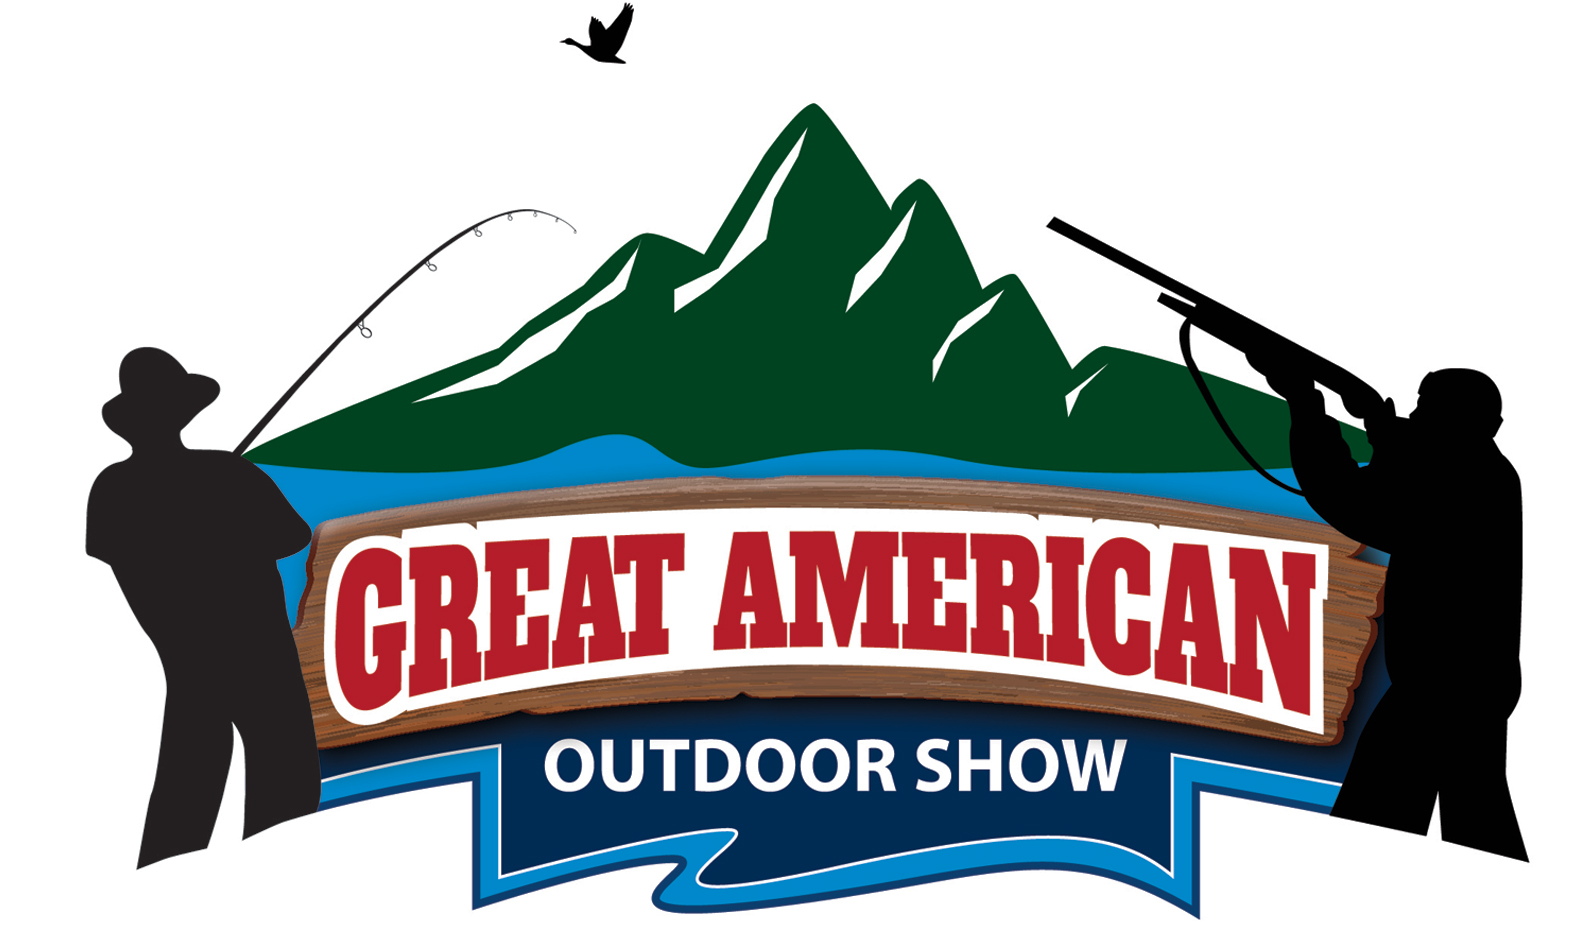 Great-American-Outdoor-Show.jpg